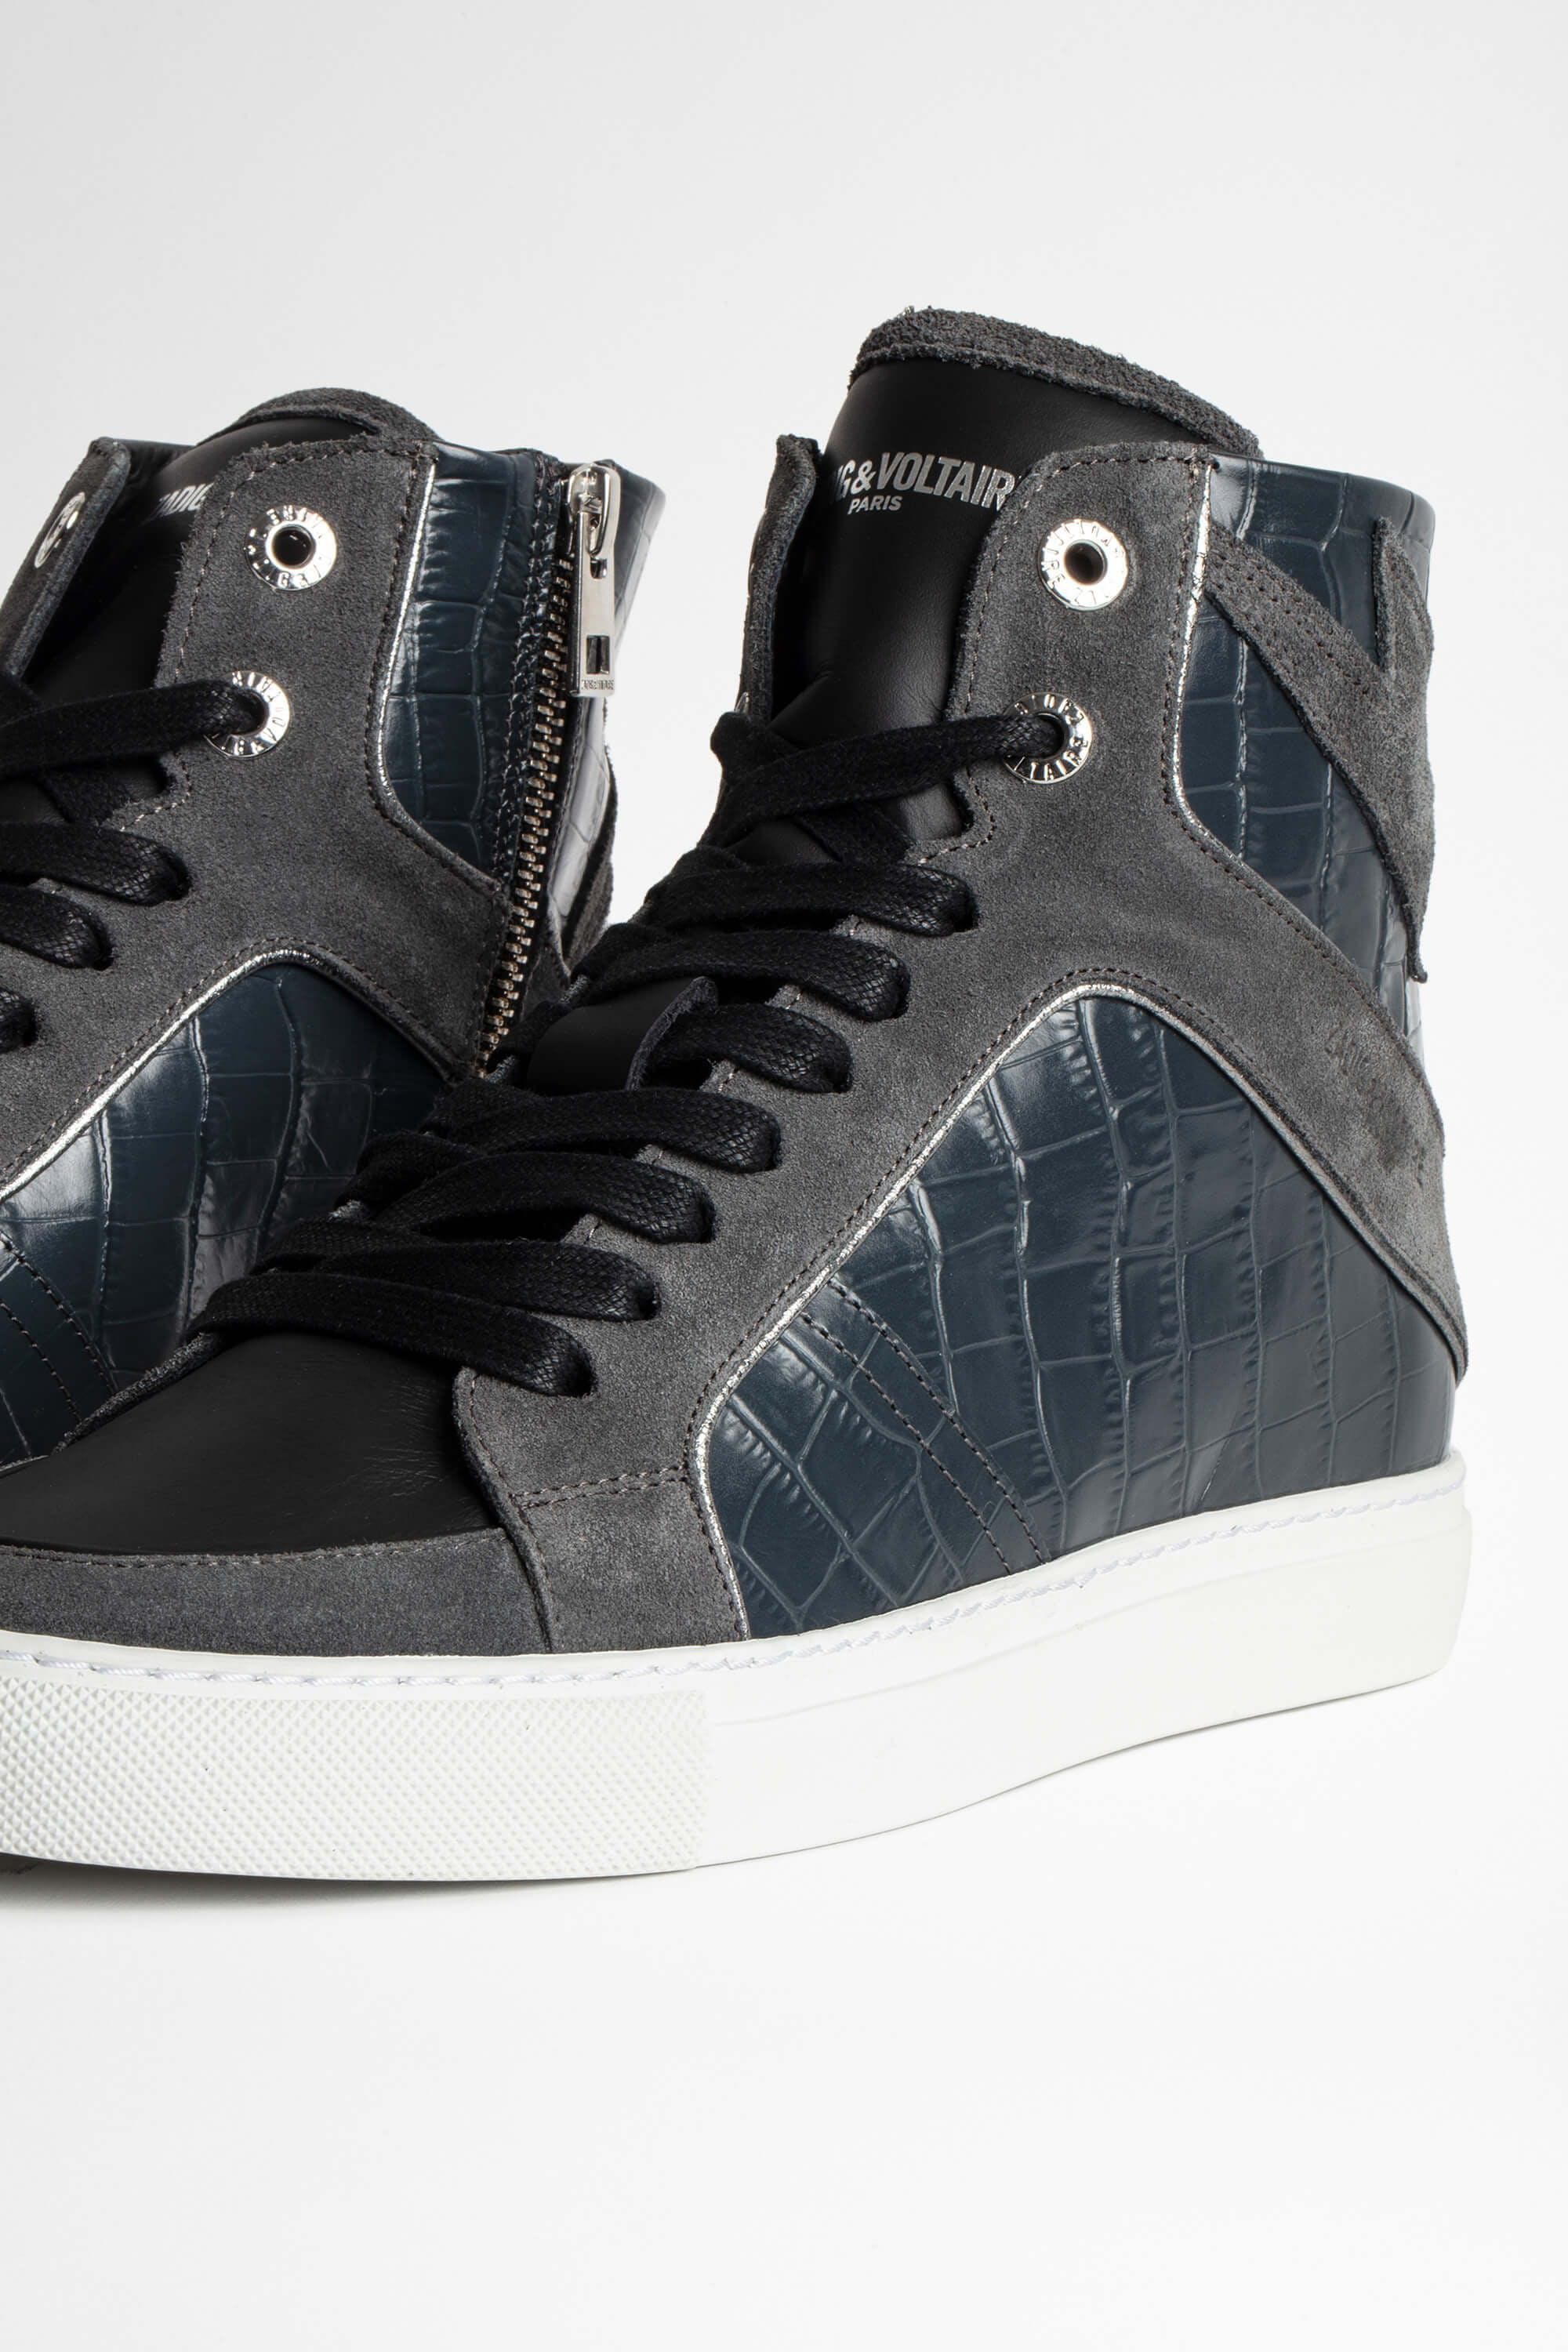 ZV1747 High Flash Sneakers 4